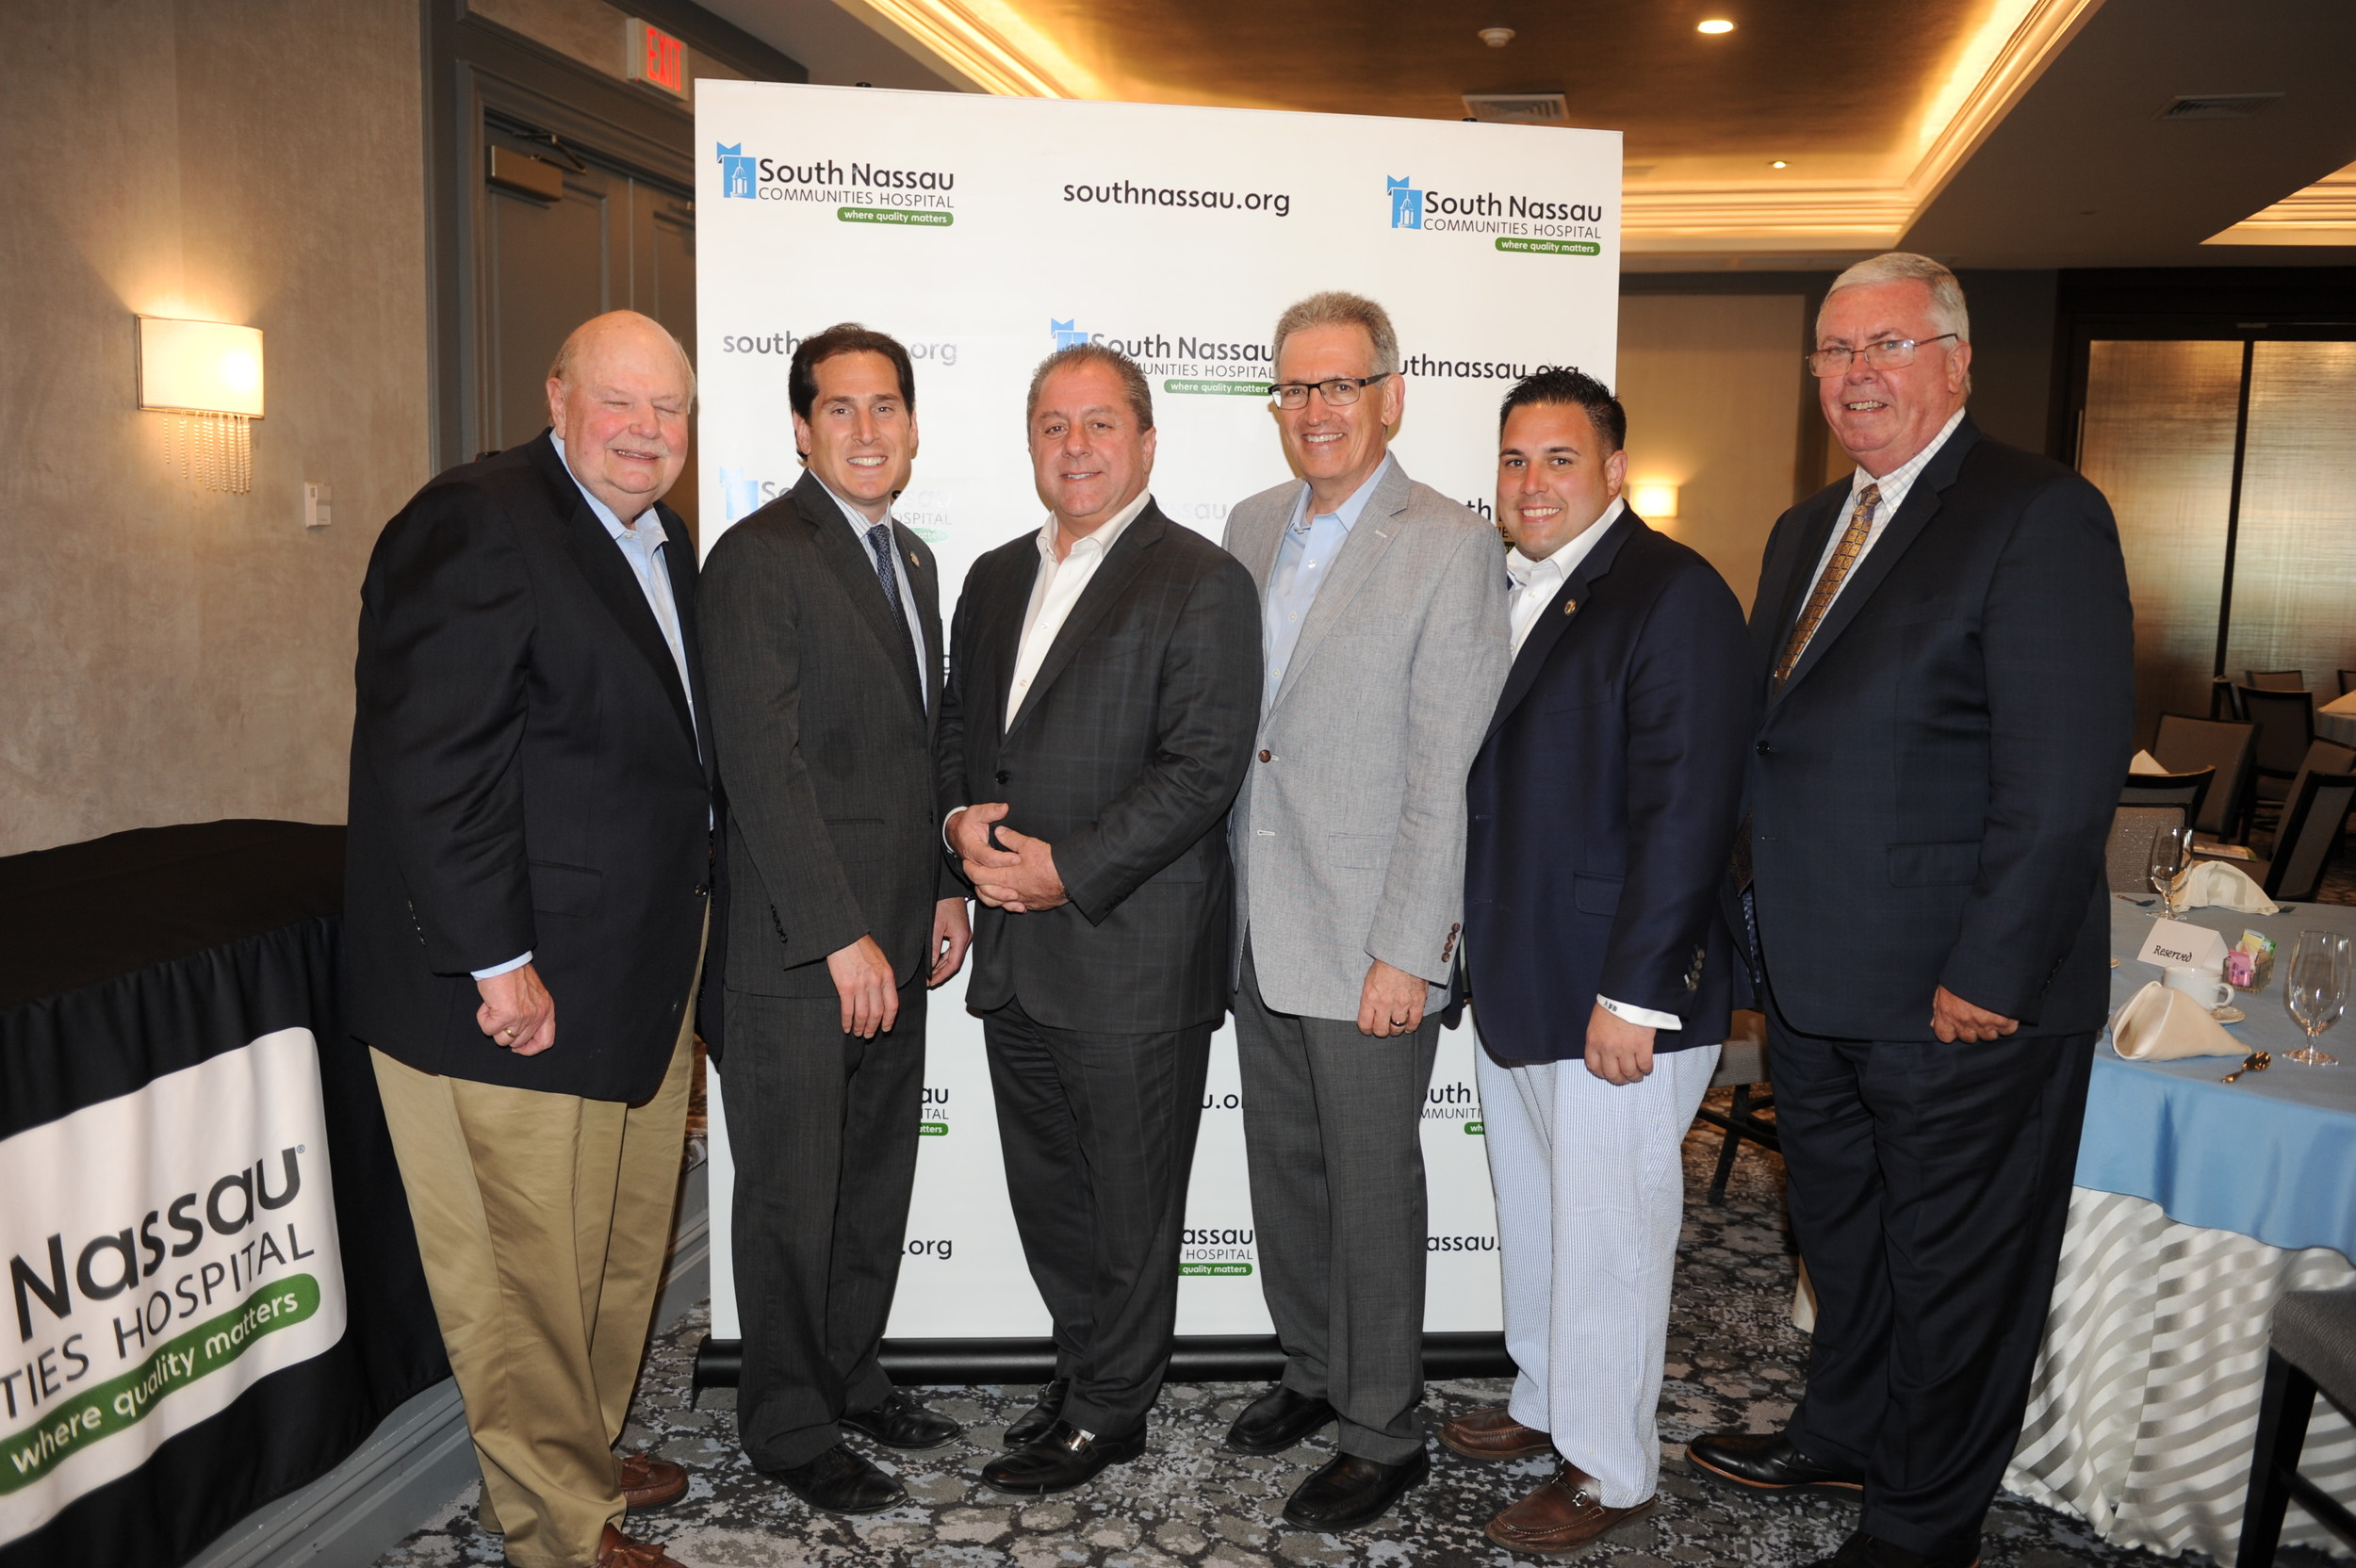 Joseph Fennessy, chairman of South Nassau Communities Hospital's board of directors, far left; State Sen. Todd Kaminsky; Butch Yamali, president of the Dover Group; Wayne Lipton, founder of Concierge Choice Physicians LLC; Town of Hempstead Councilman Anthony D'Esposito; and Richard J. Murphy, the hospital's president and CEO.